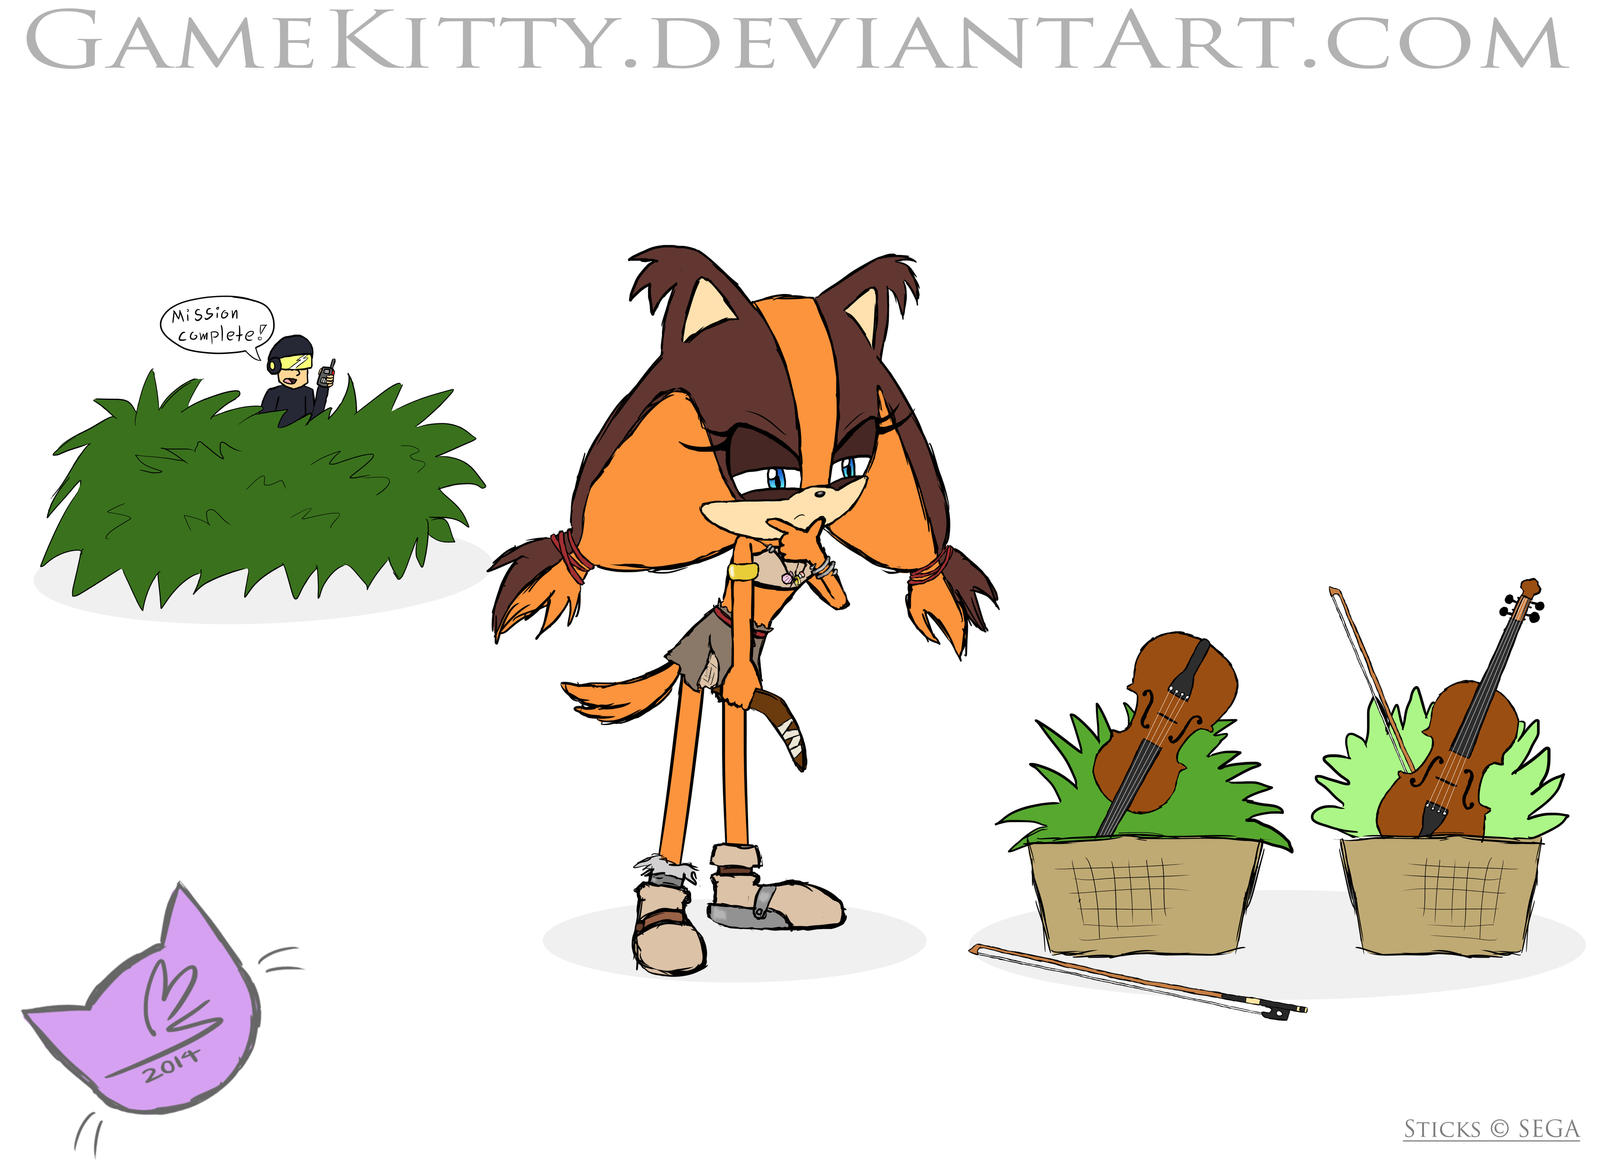 Sticks and her Violin plants by GameKitty